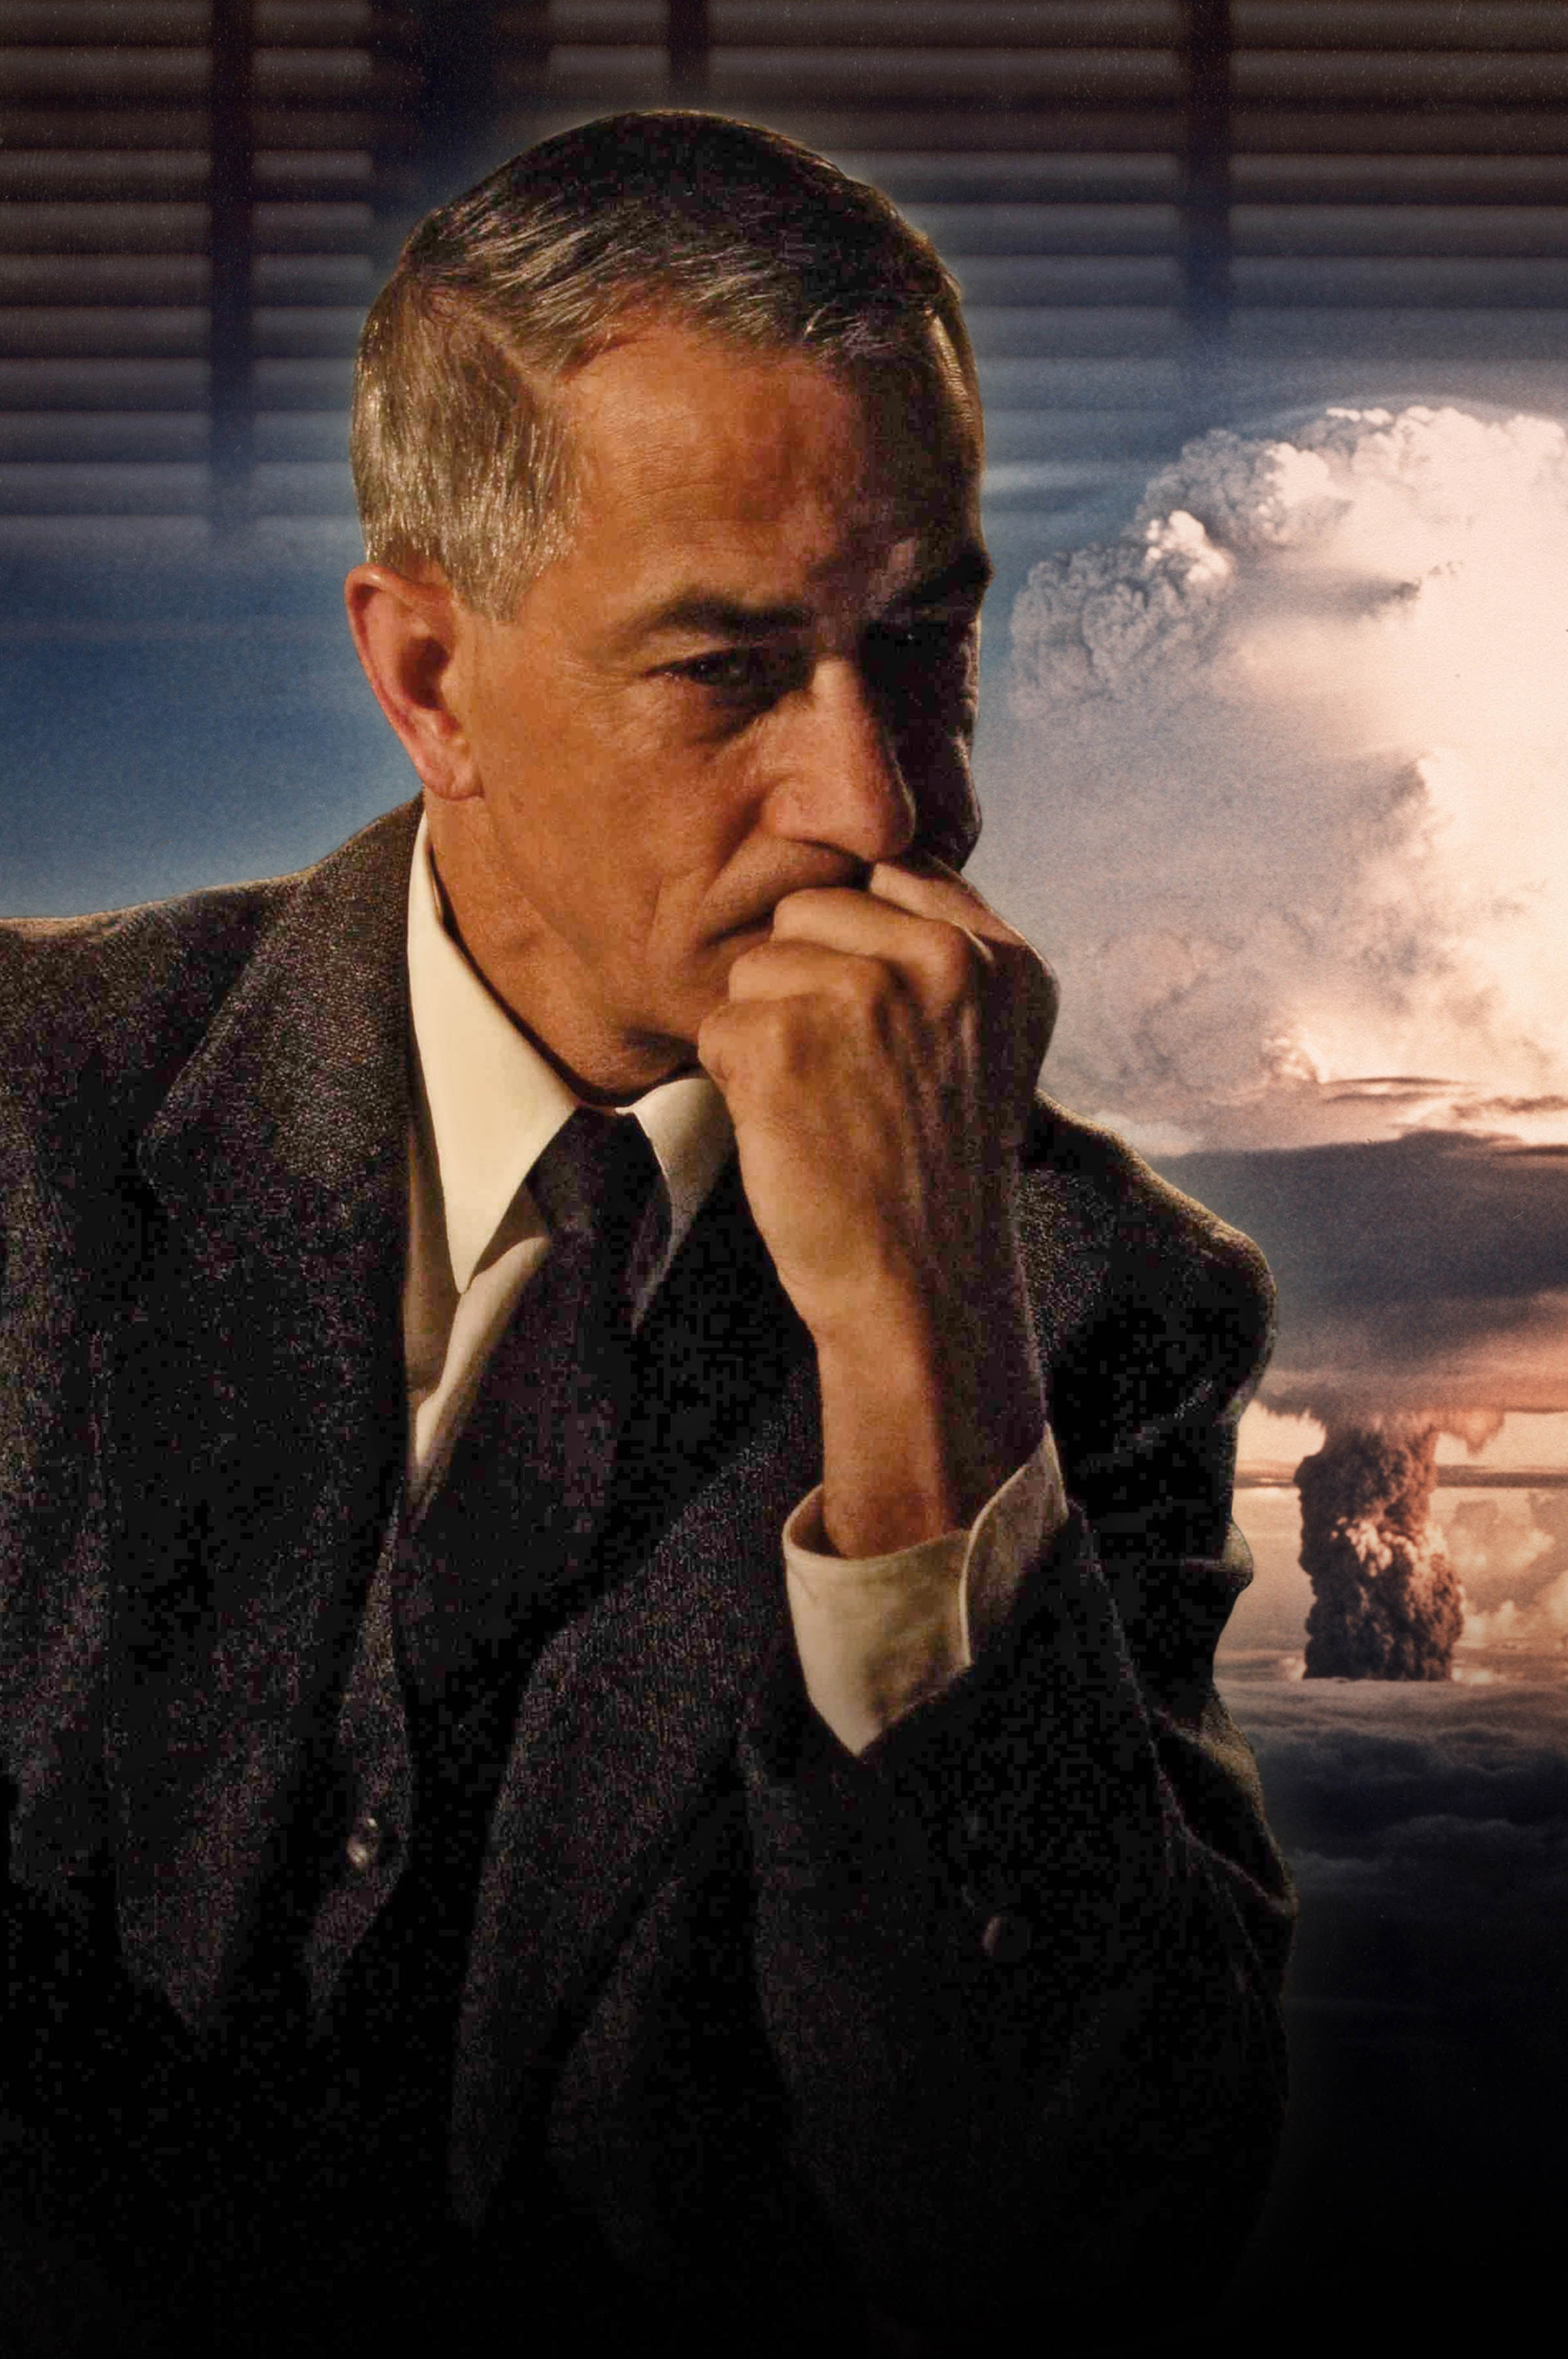 robert oppenheimer essay Trinity was the code name of the first detonation of a nuclear weapon, conducted by the united states army on july 16, 1945, as part of the manhattan.